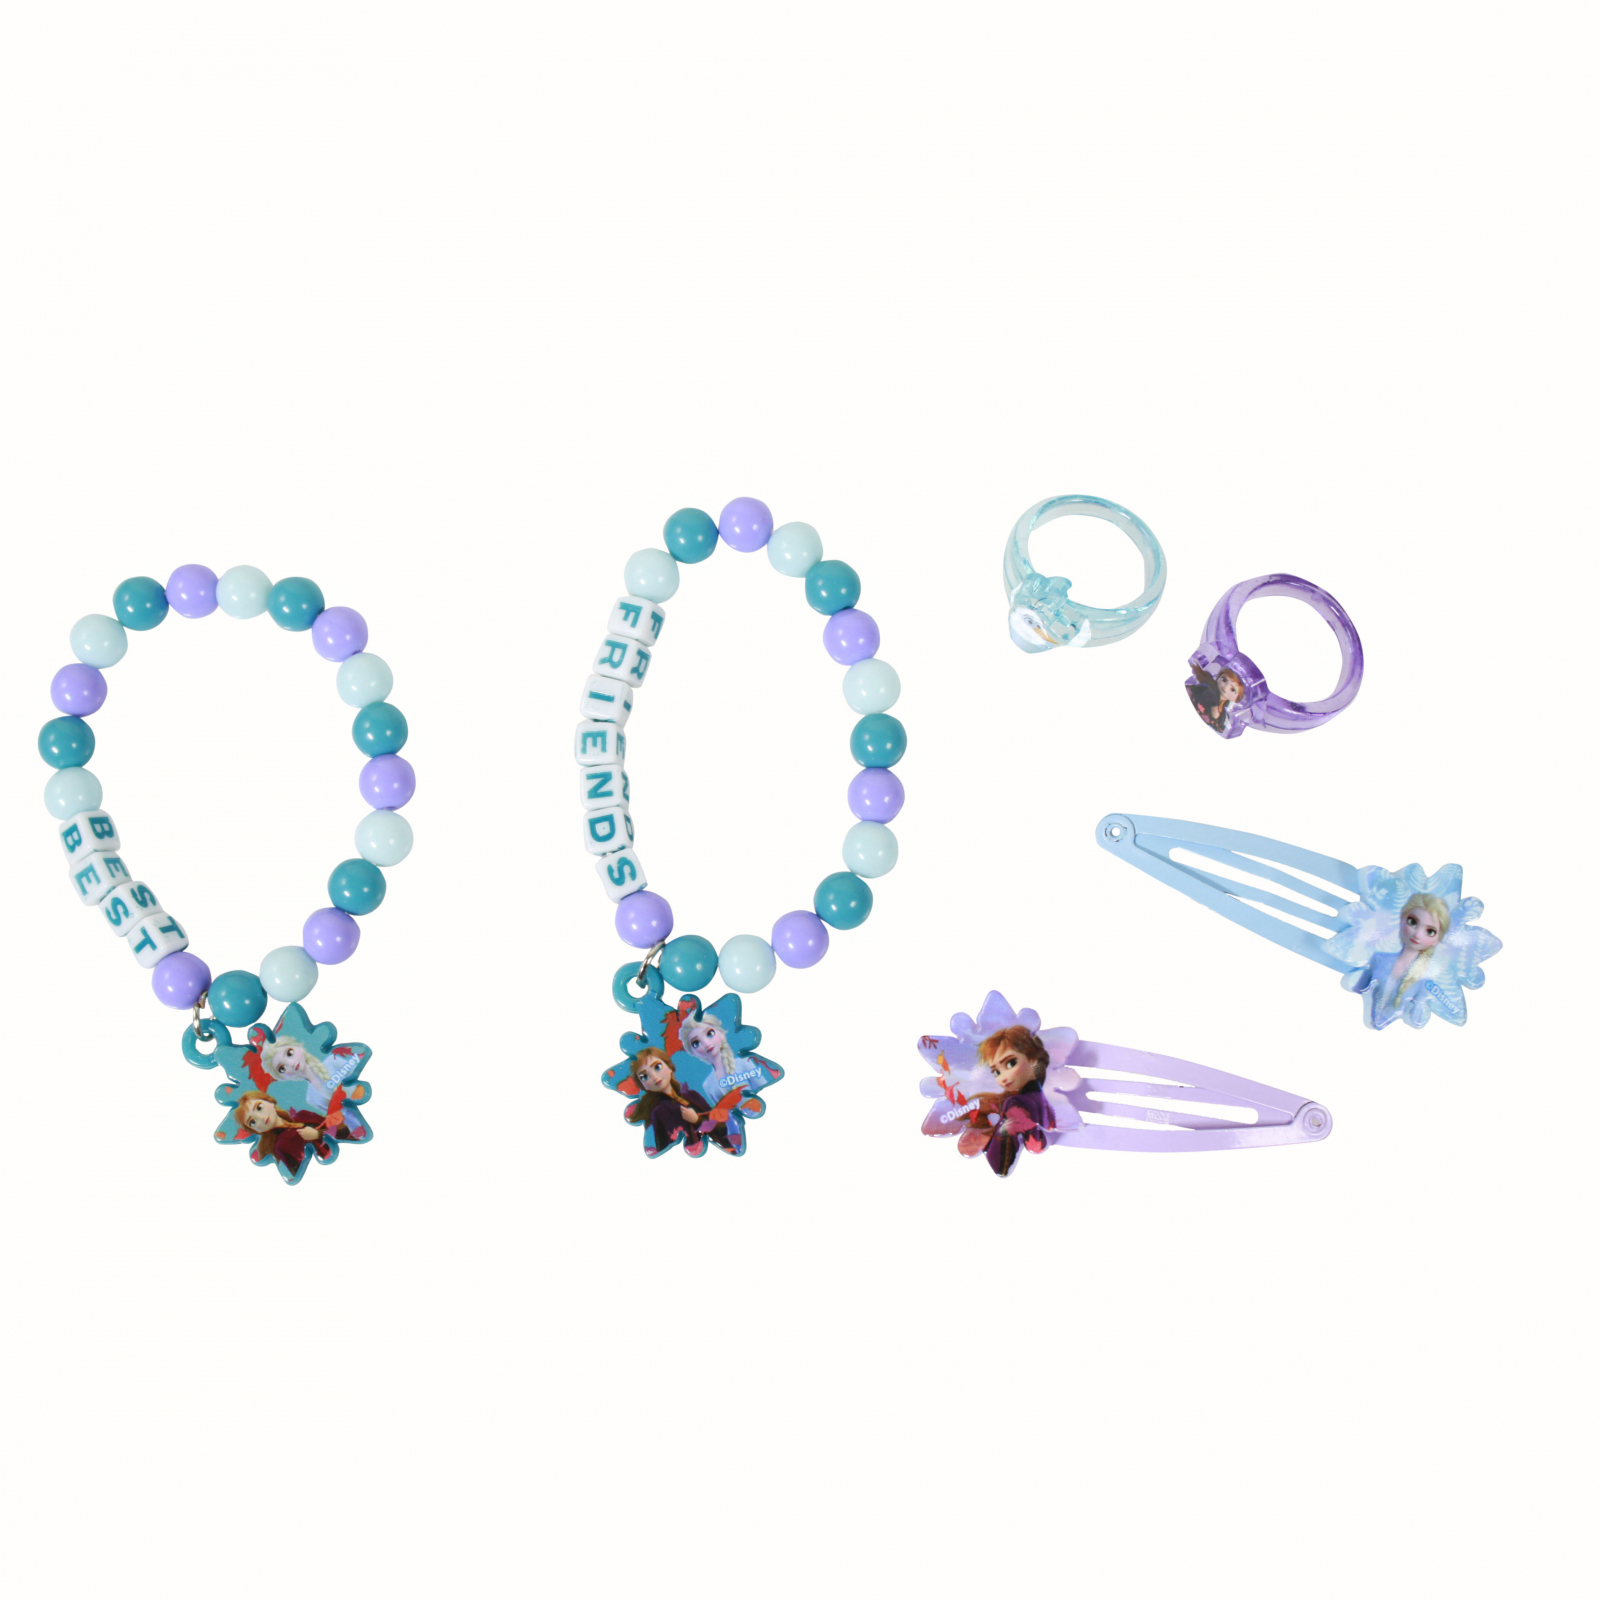 Frozen 2 Best Friends Matching Bracelets And Accessories Set